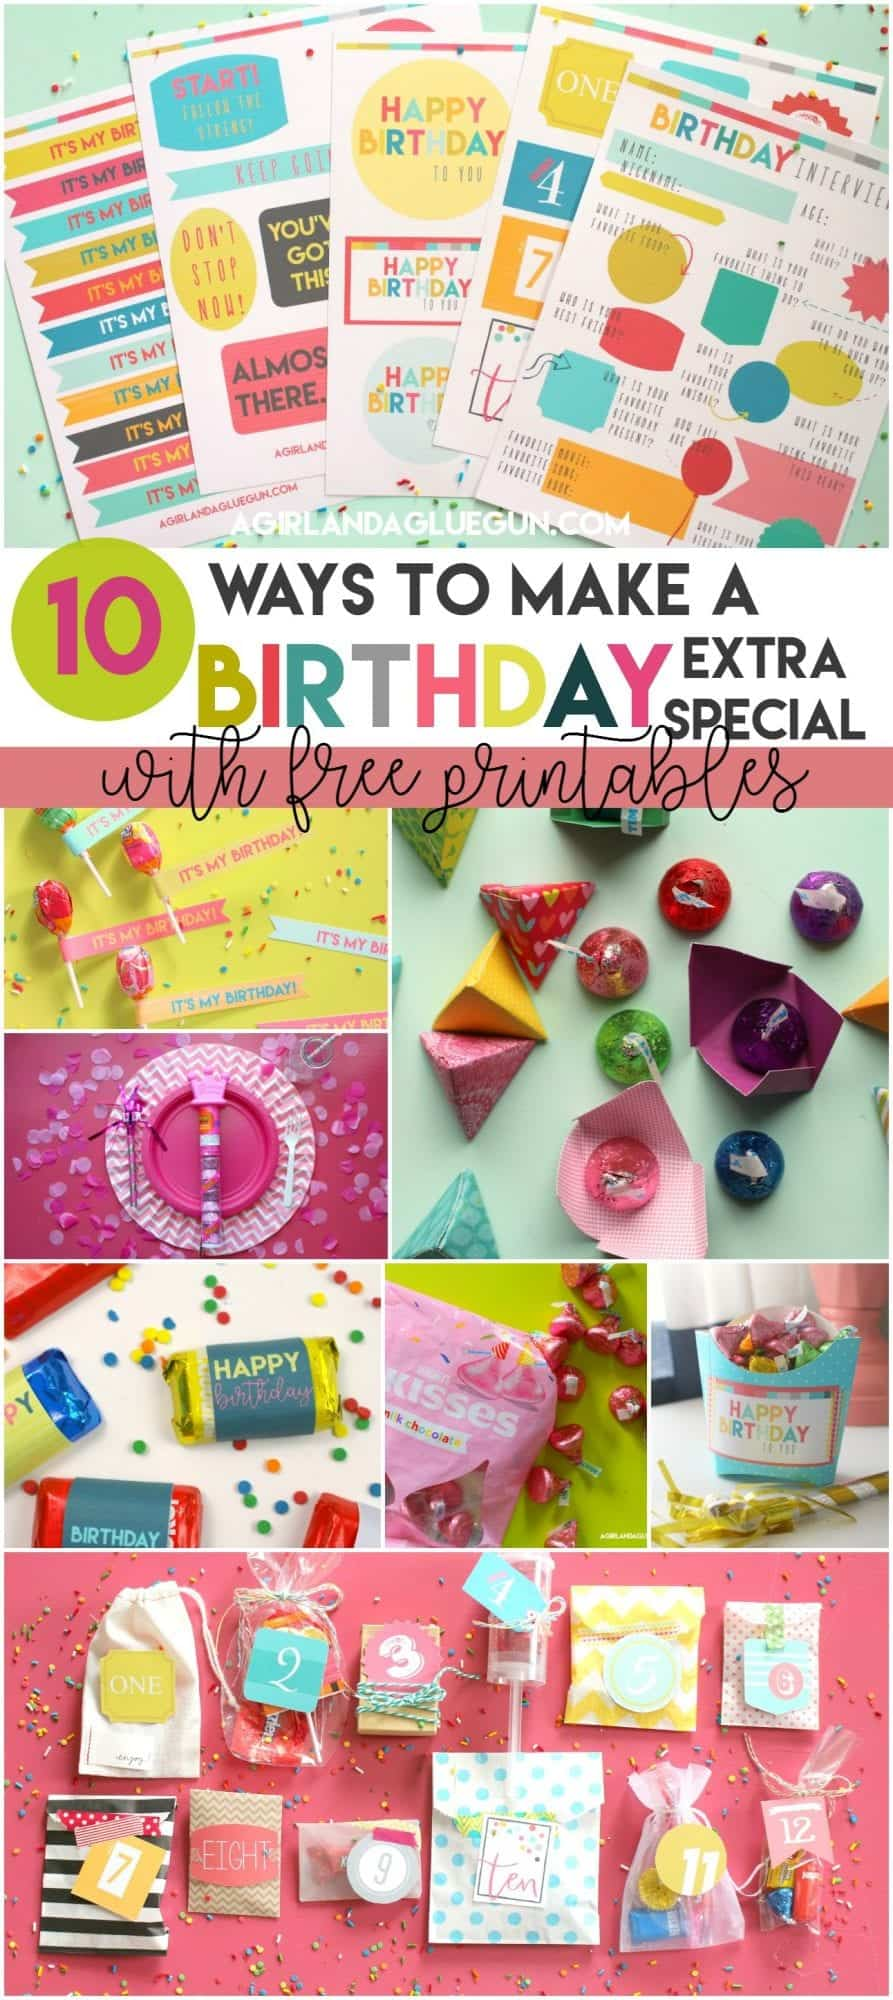 11-fun-ways-to-make-a-birthday-extra-special-with-free-printables